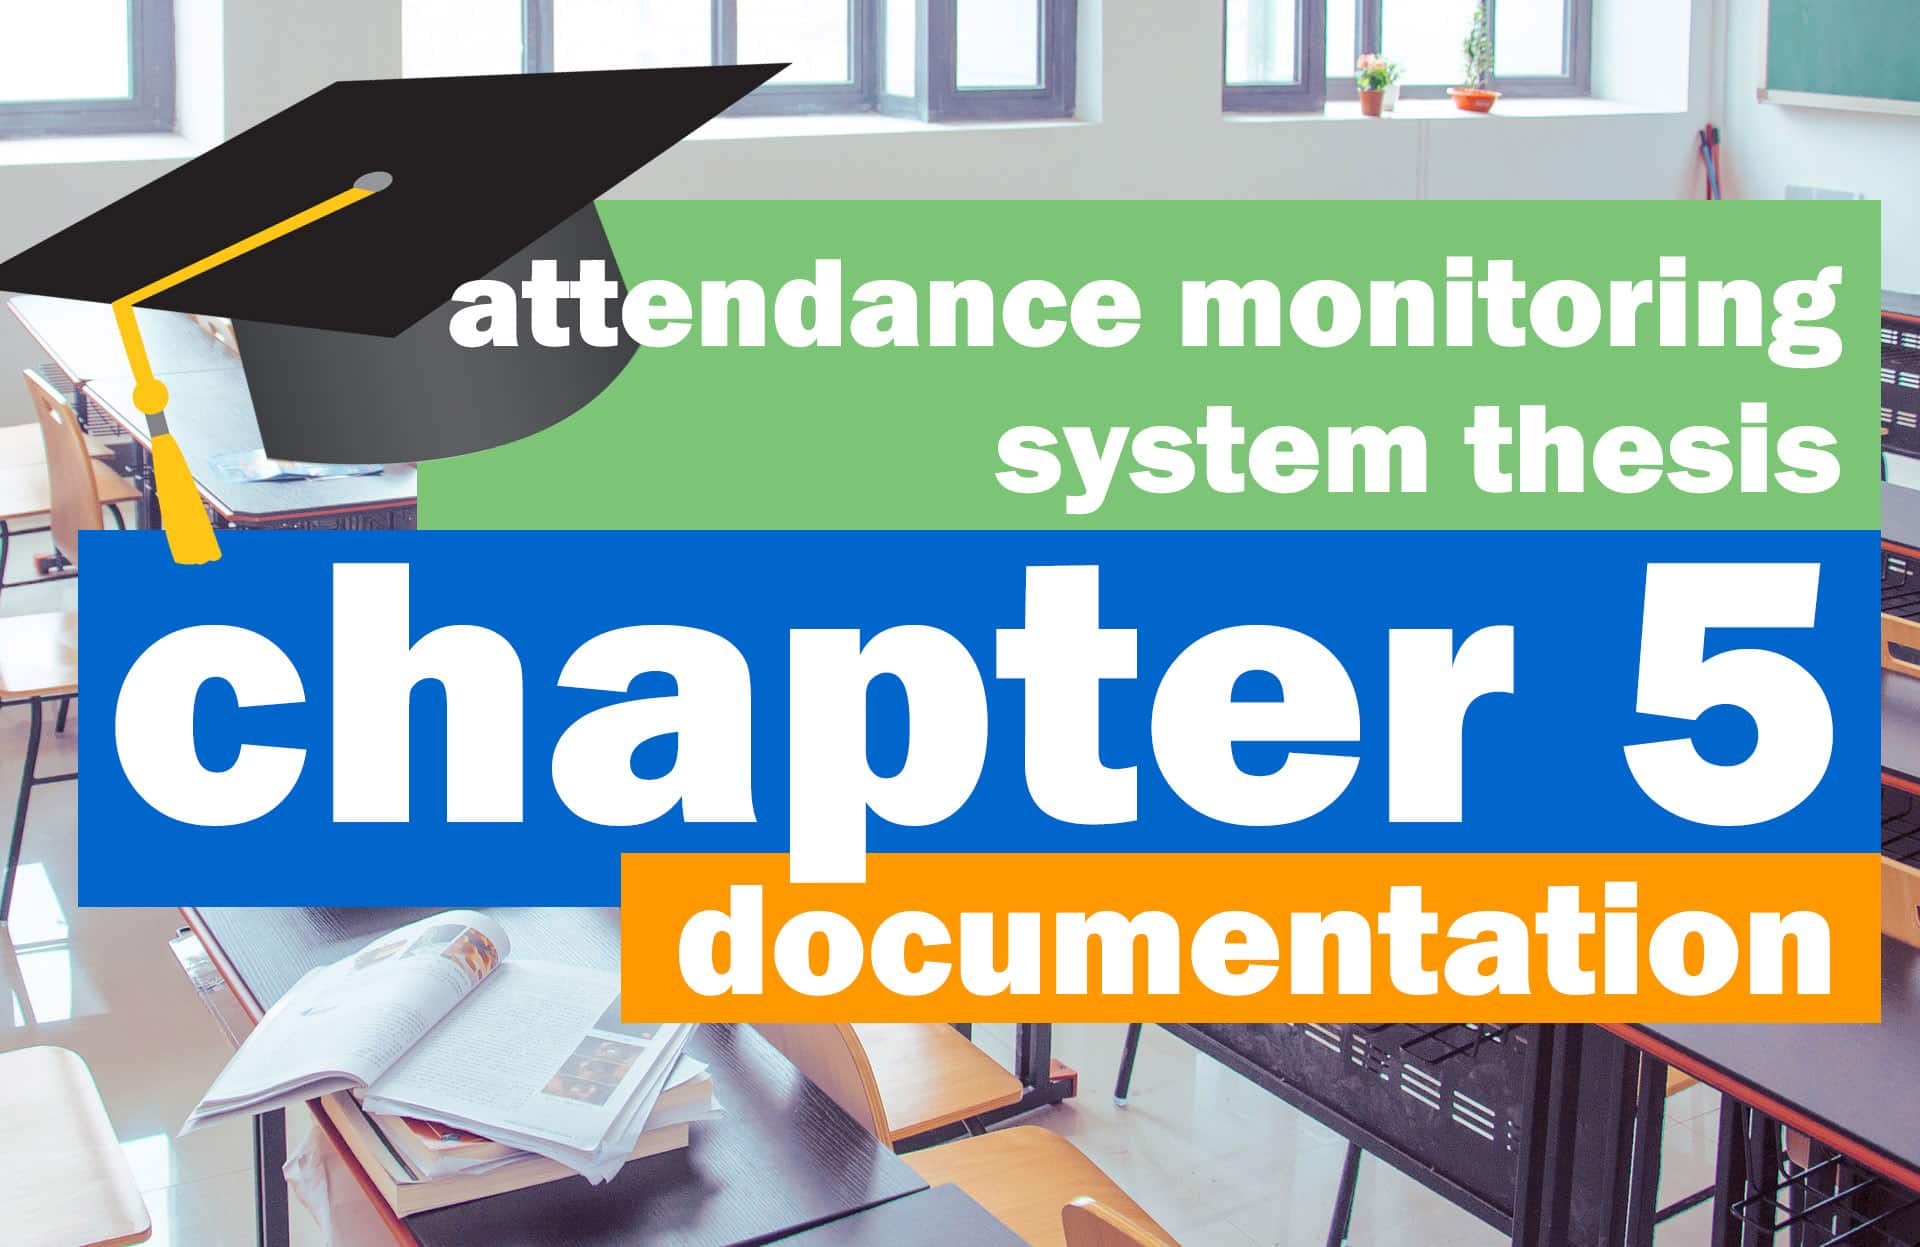 Attendance Monitoring System thesis Chapter 5 documentation